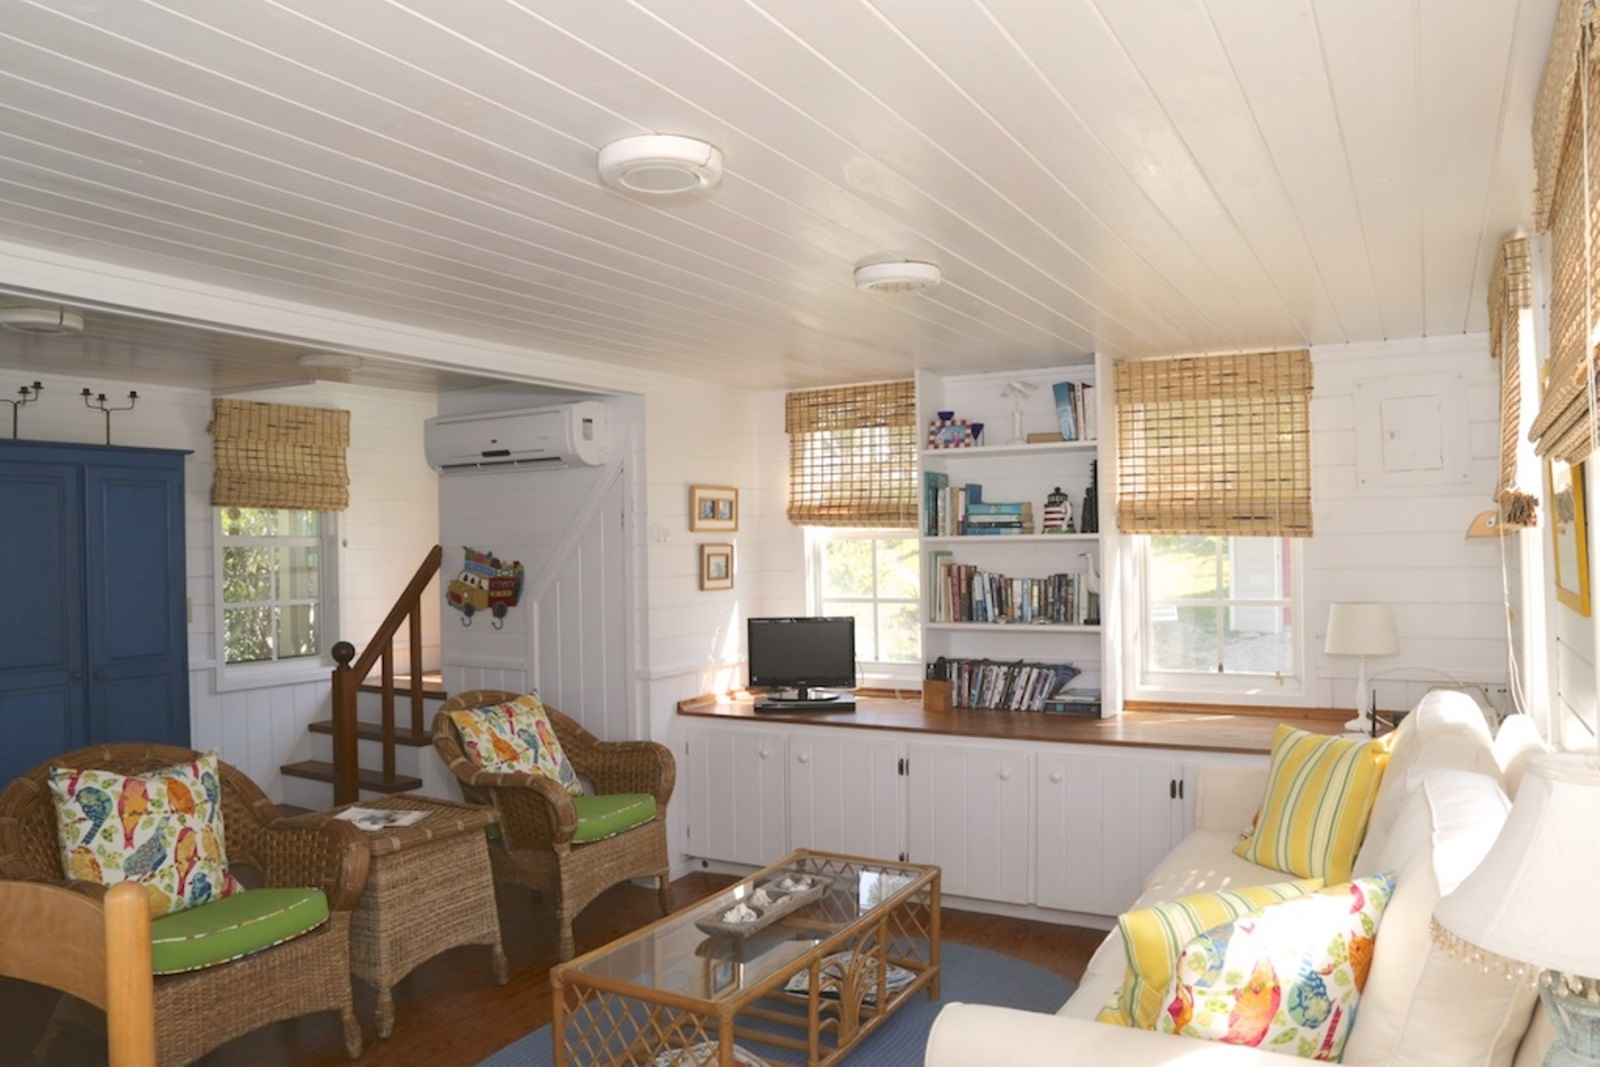 Single Family Home for Sale at Yellow Bird Cottage in the Heart of the Settlement (MLS 26385) Elbow Cay Hope Town, Abaco, Bahamas